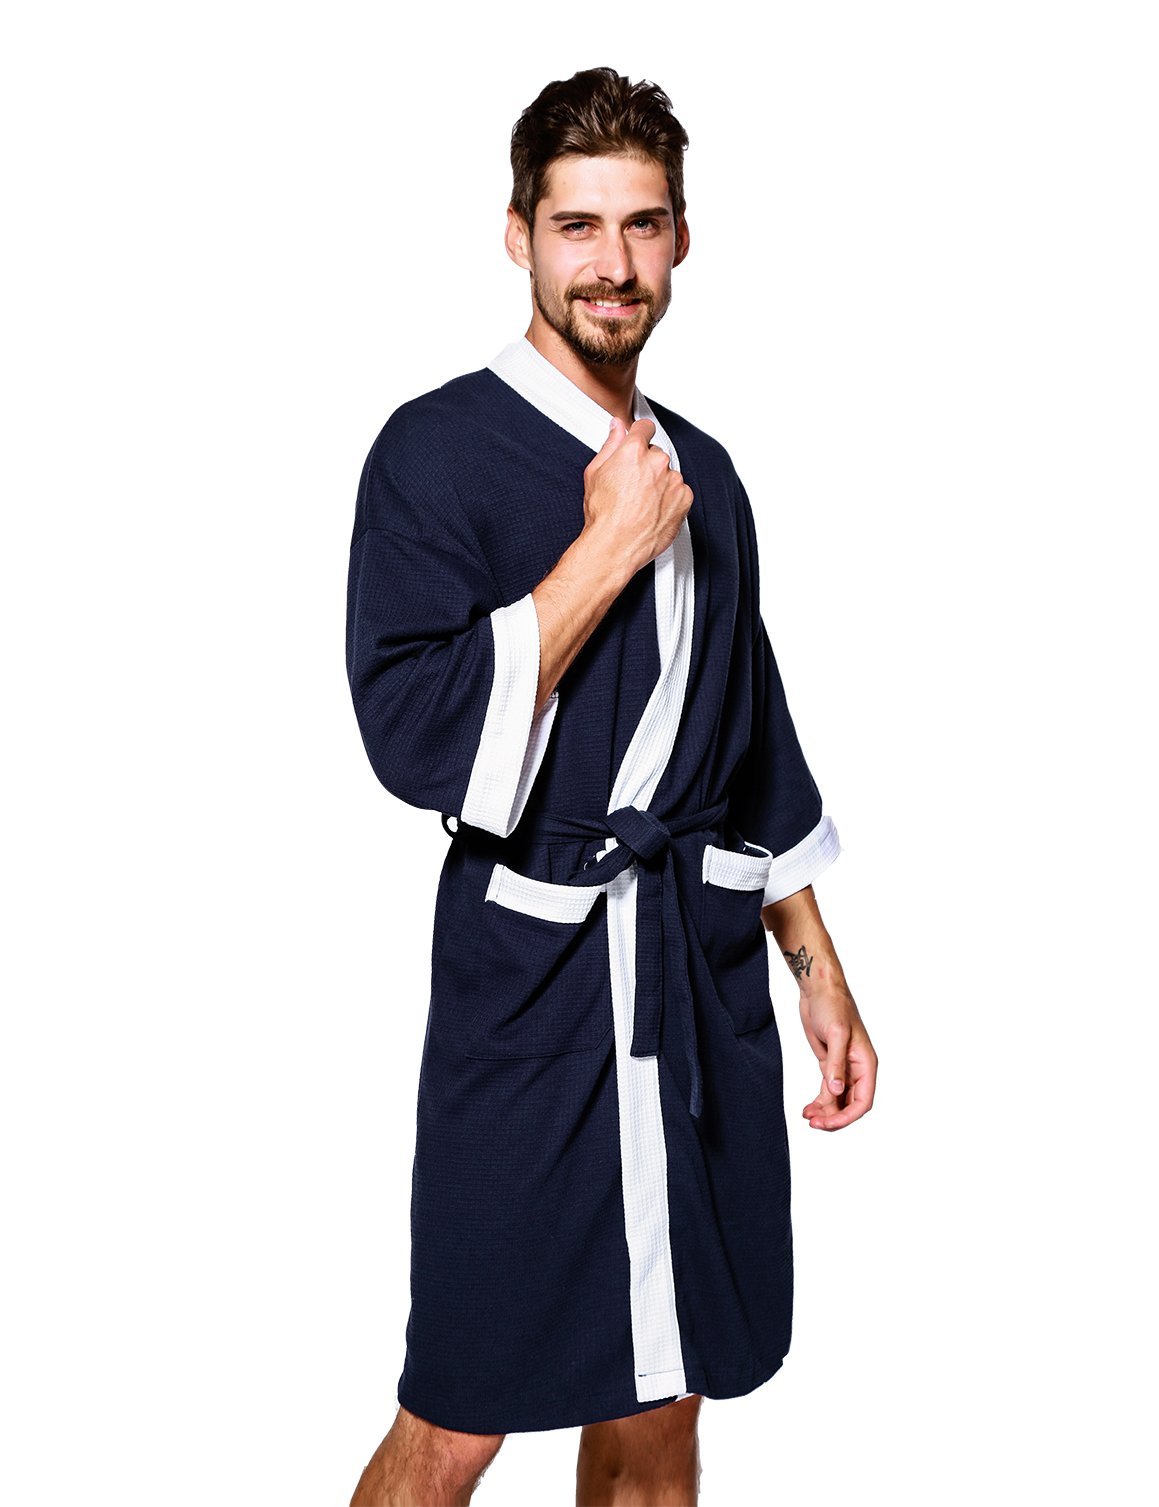 Jearey Men's Kimono Robe Cotton Waffle Spa Bathrobe Lightweight Soft Knee Length Sleepwear with Pockets(Navy-White, L)